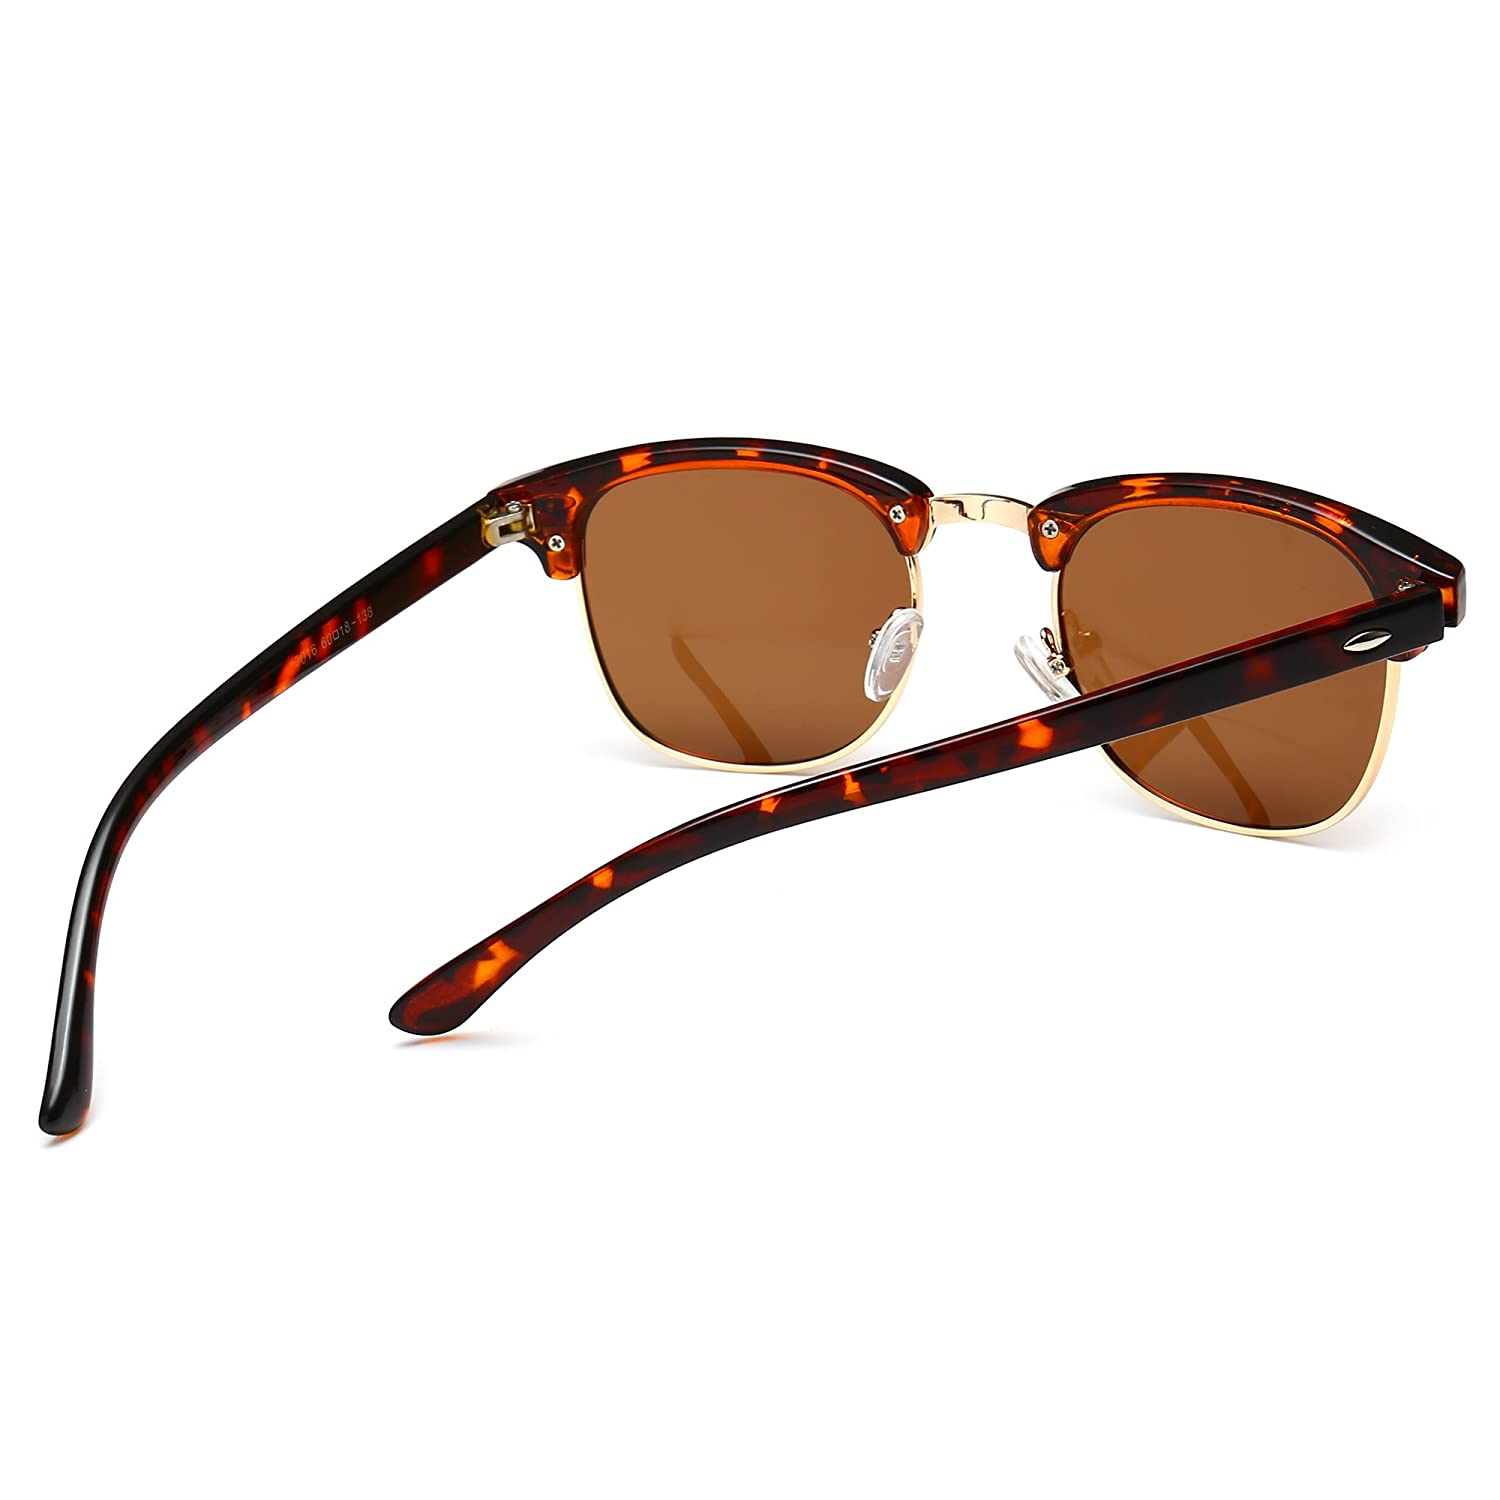 4f00310c7da Amazon.com  SUNGAIT 80s Sunglasses Retro Semi Rimless for Men Women (Amber  Frame Brown Lens) 3016 HPKC  Clothing